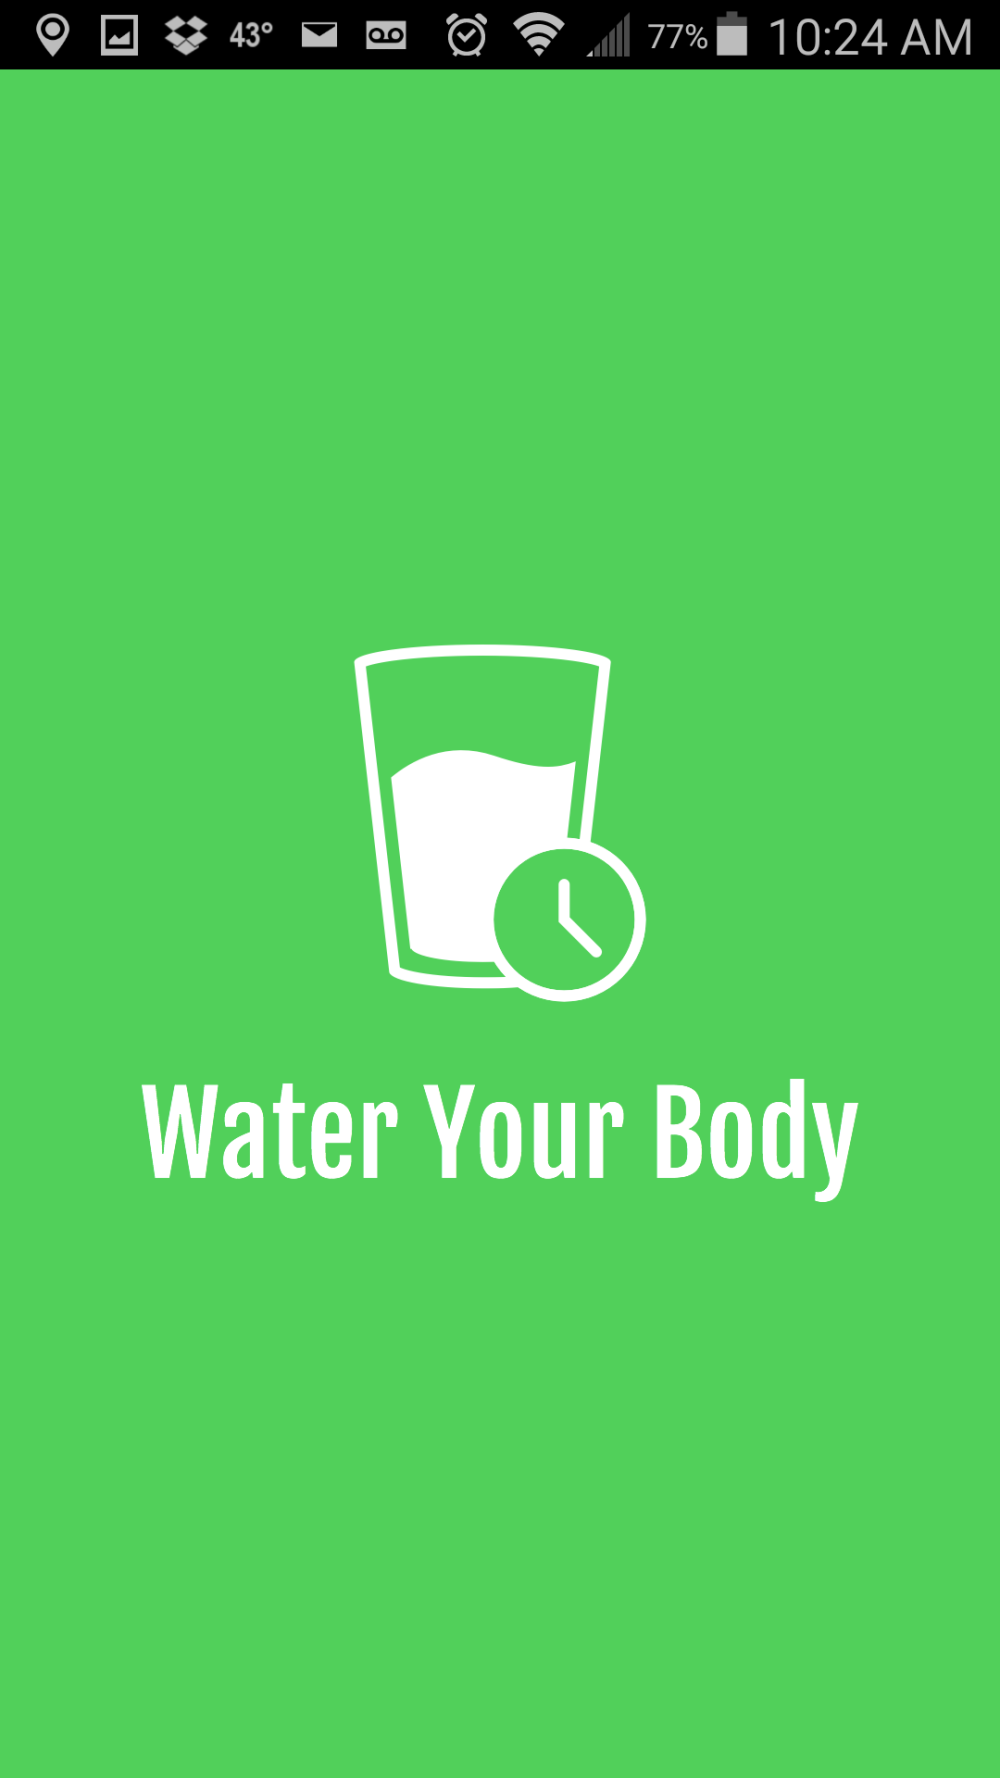 Things I like: Water Your Body mobile app